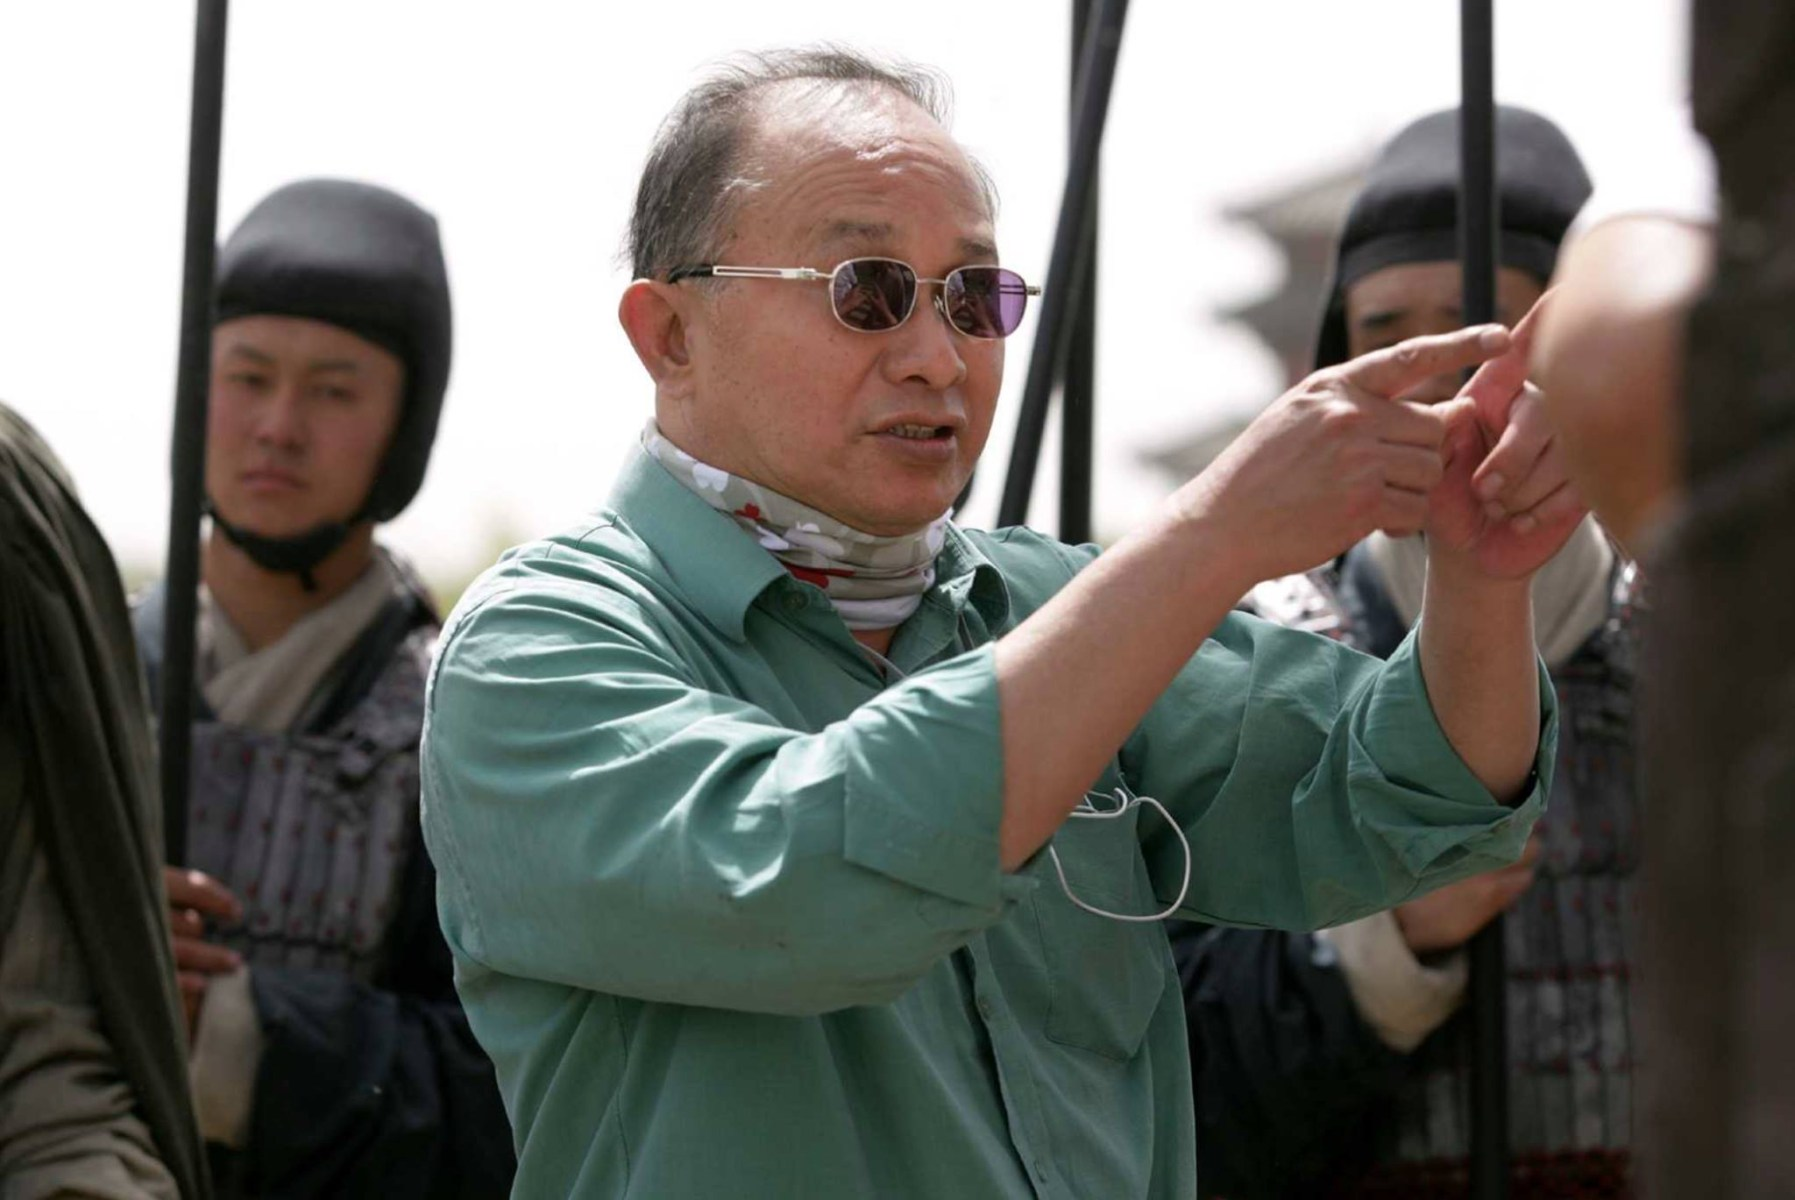 John Woo : Red Cliff (2008) Behind the Scenes